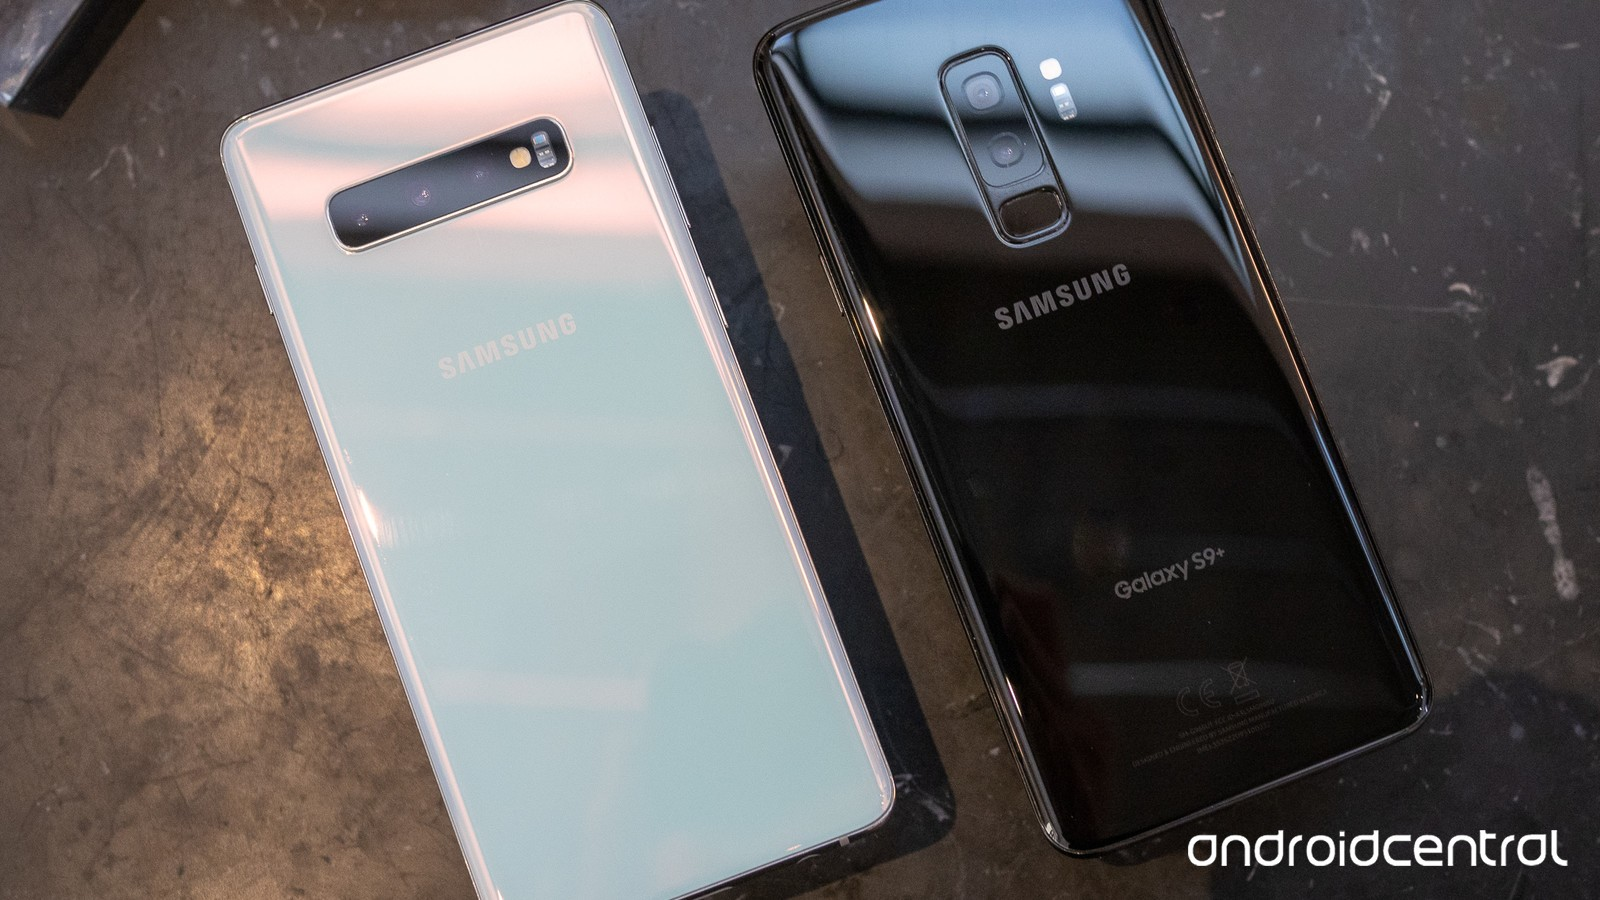 Samsung Galaxy S10 Beats Galaxy S9 In More Than Just Specs